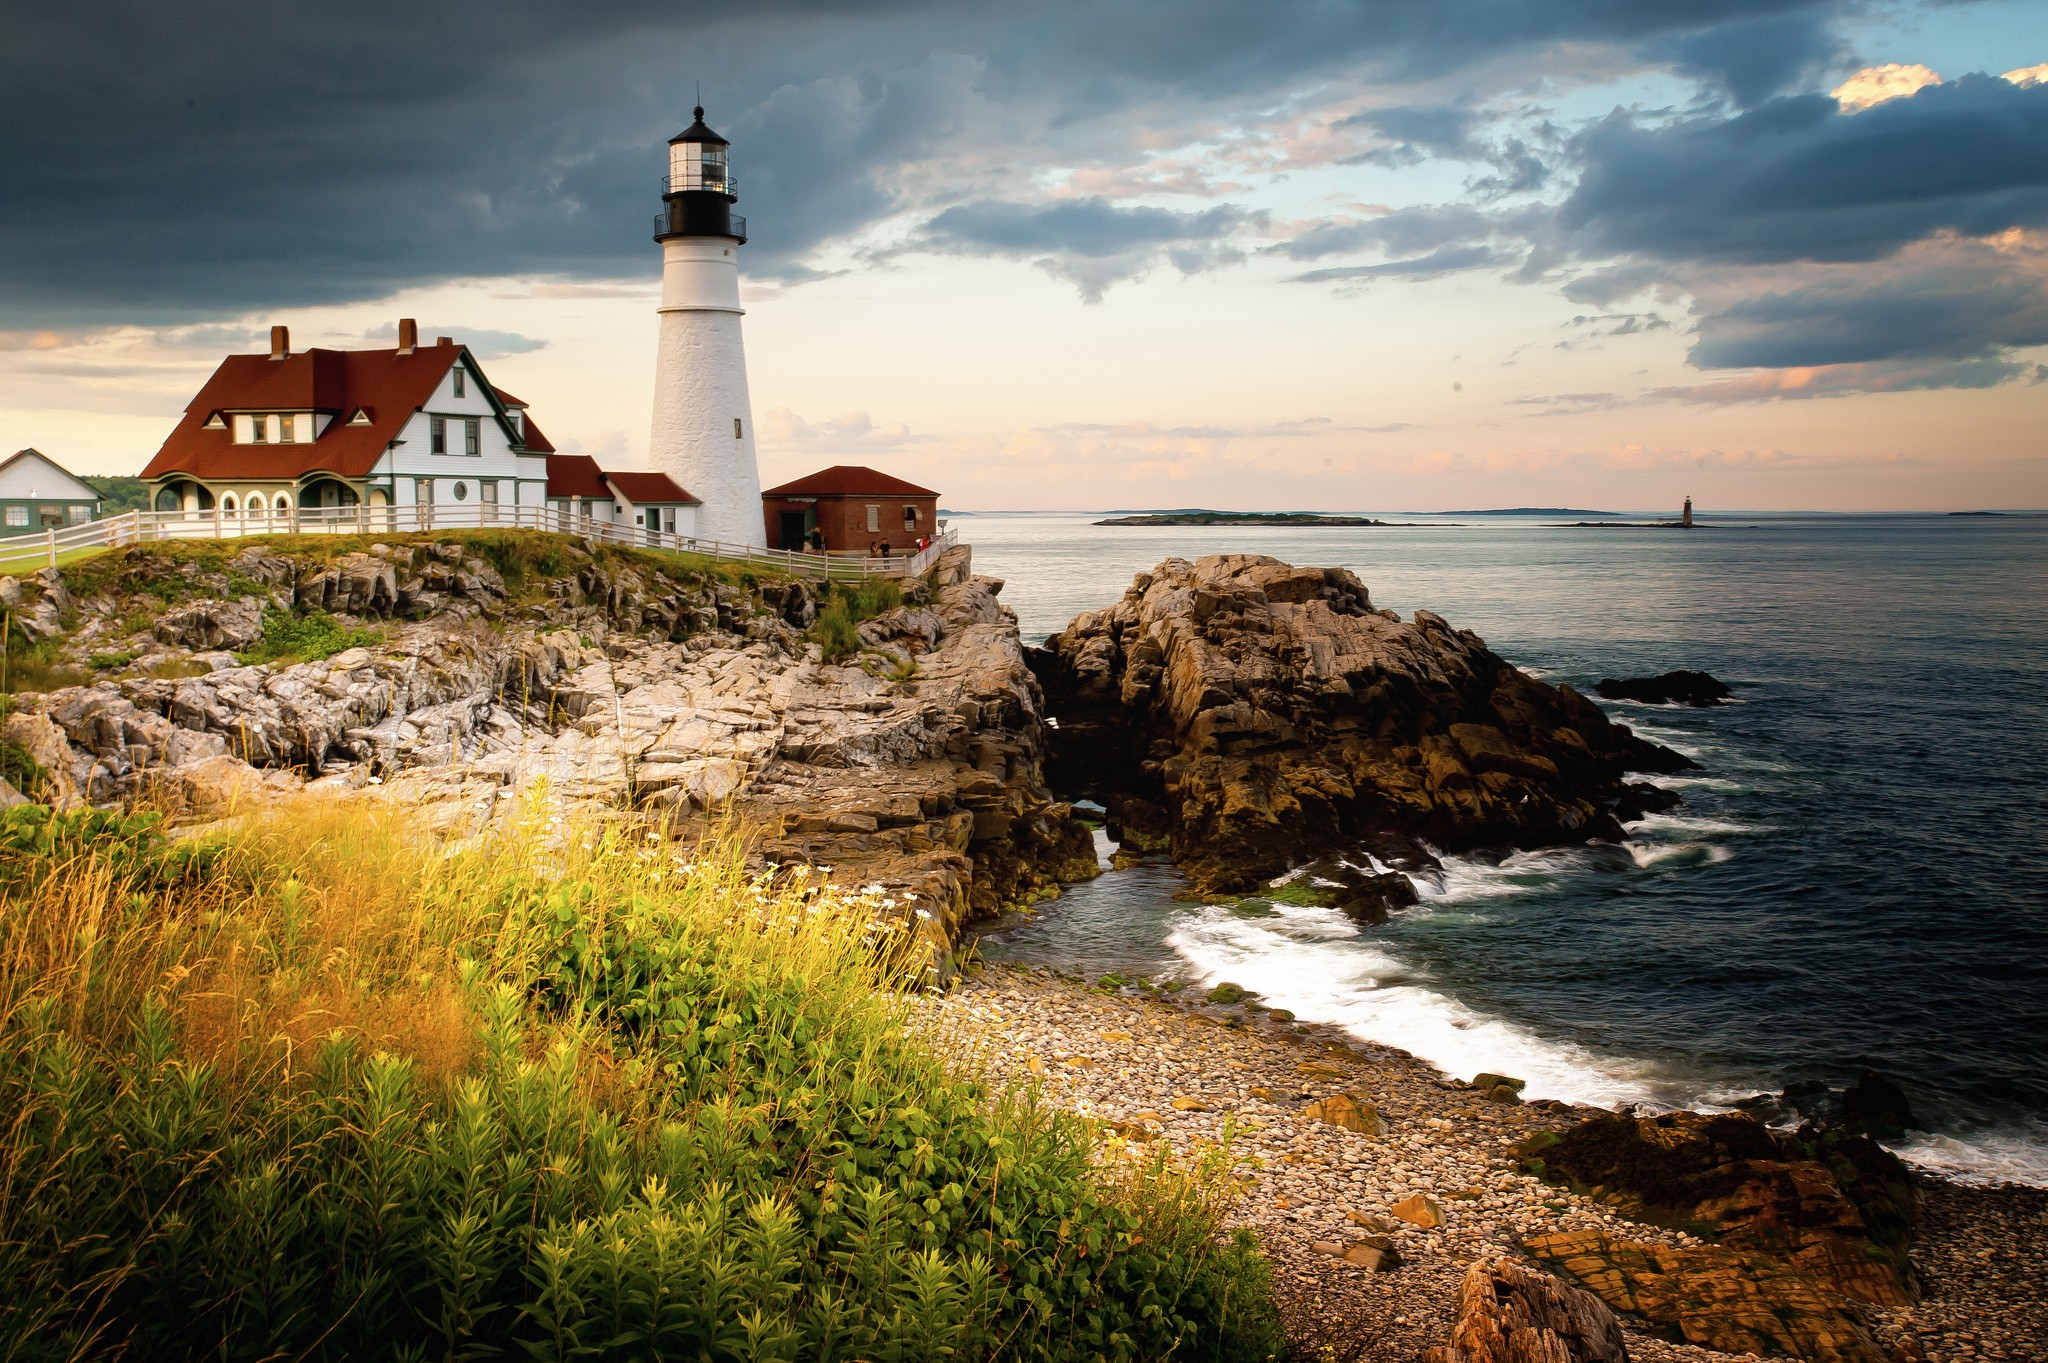 wallpaper portland head light, 4k, hd wallpaper, cape elizabeth